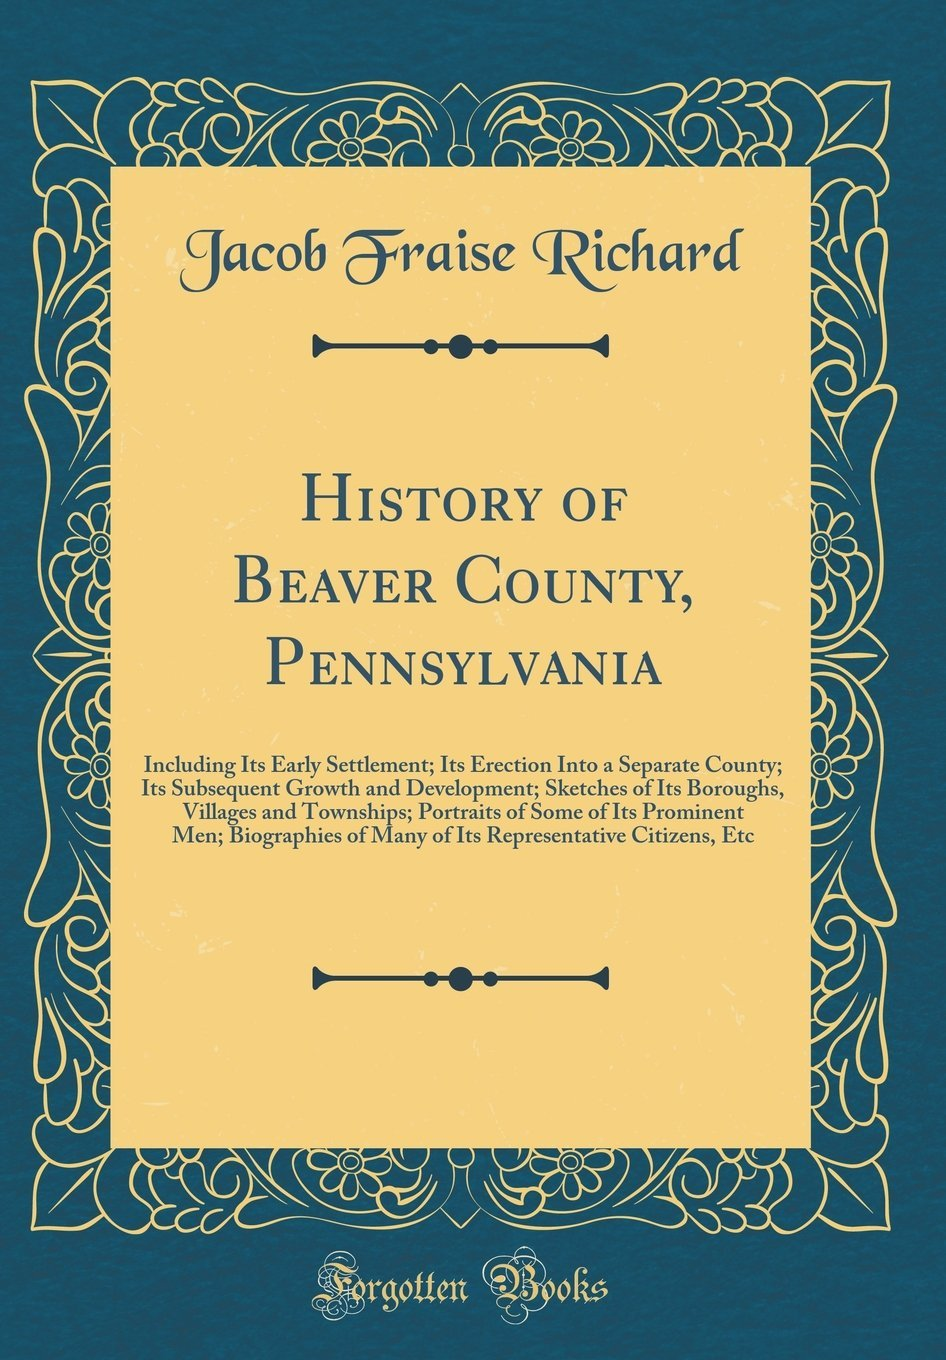 Read Online History of Beaver County, Pennsylvania: Including Its Early Settlement; Its Erection Into a Separate County; Its Subsequent Growth and Development; ... Some of Its Prominent Men; Biographies of Ma ebook